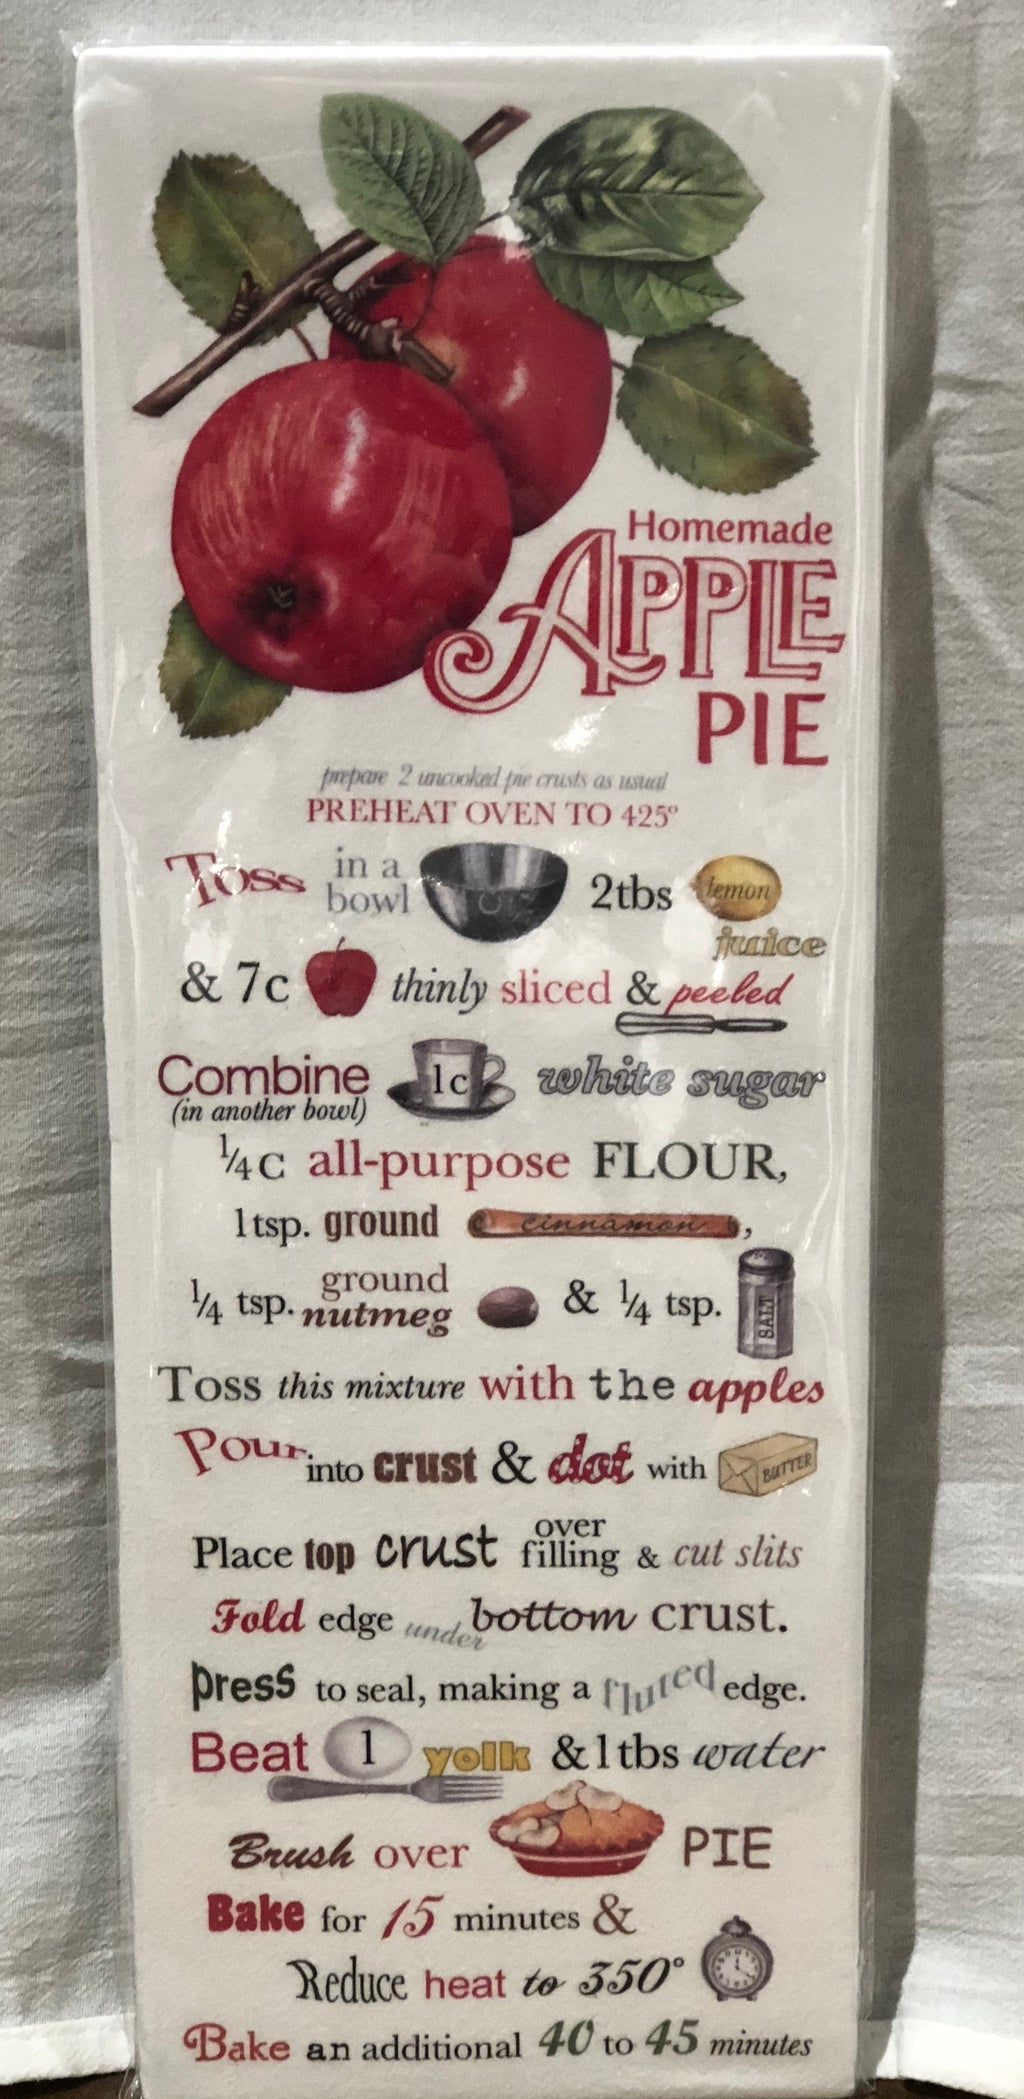 Homemade Apple Pie Recipe Towel